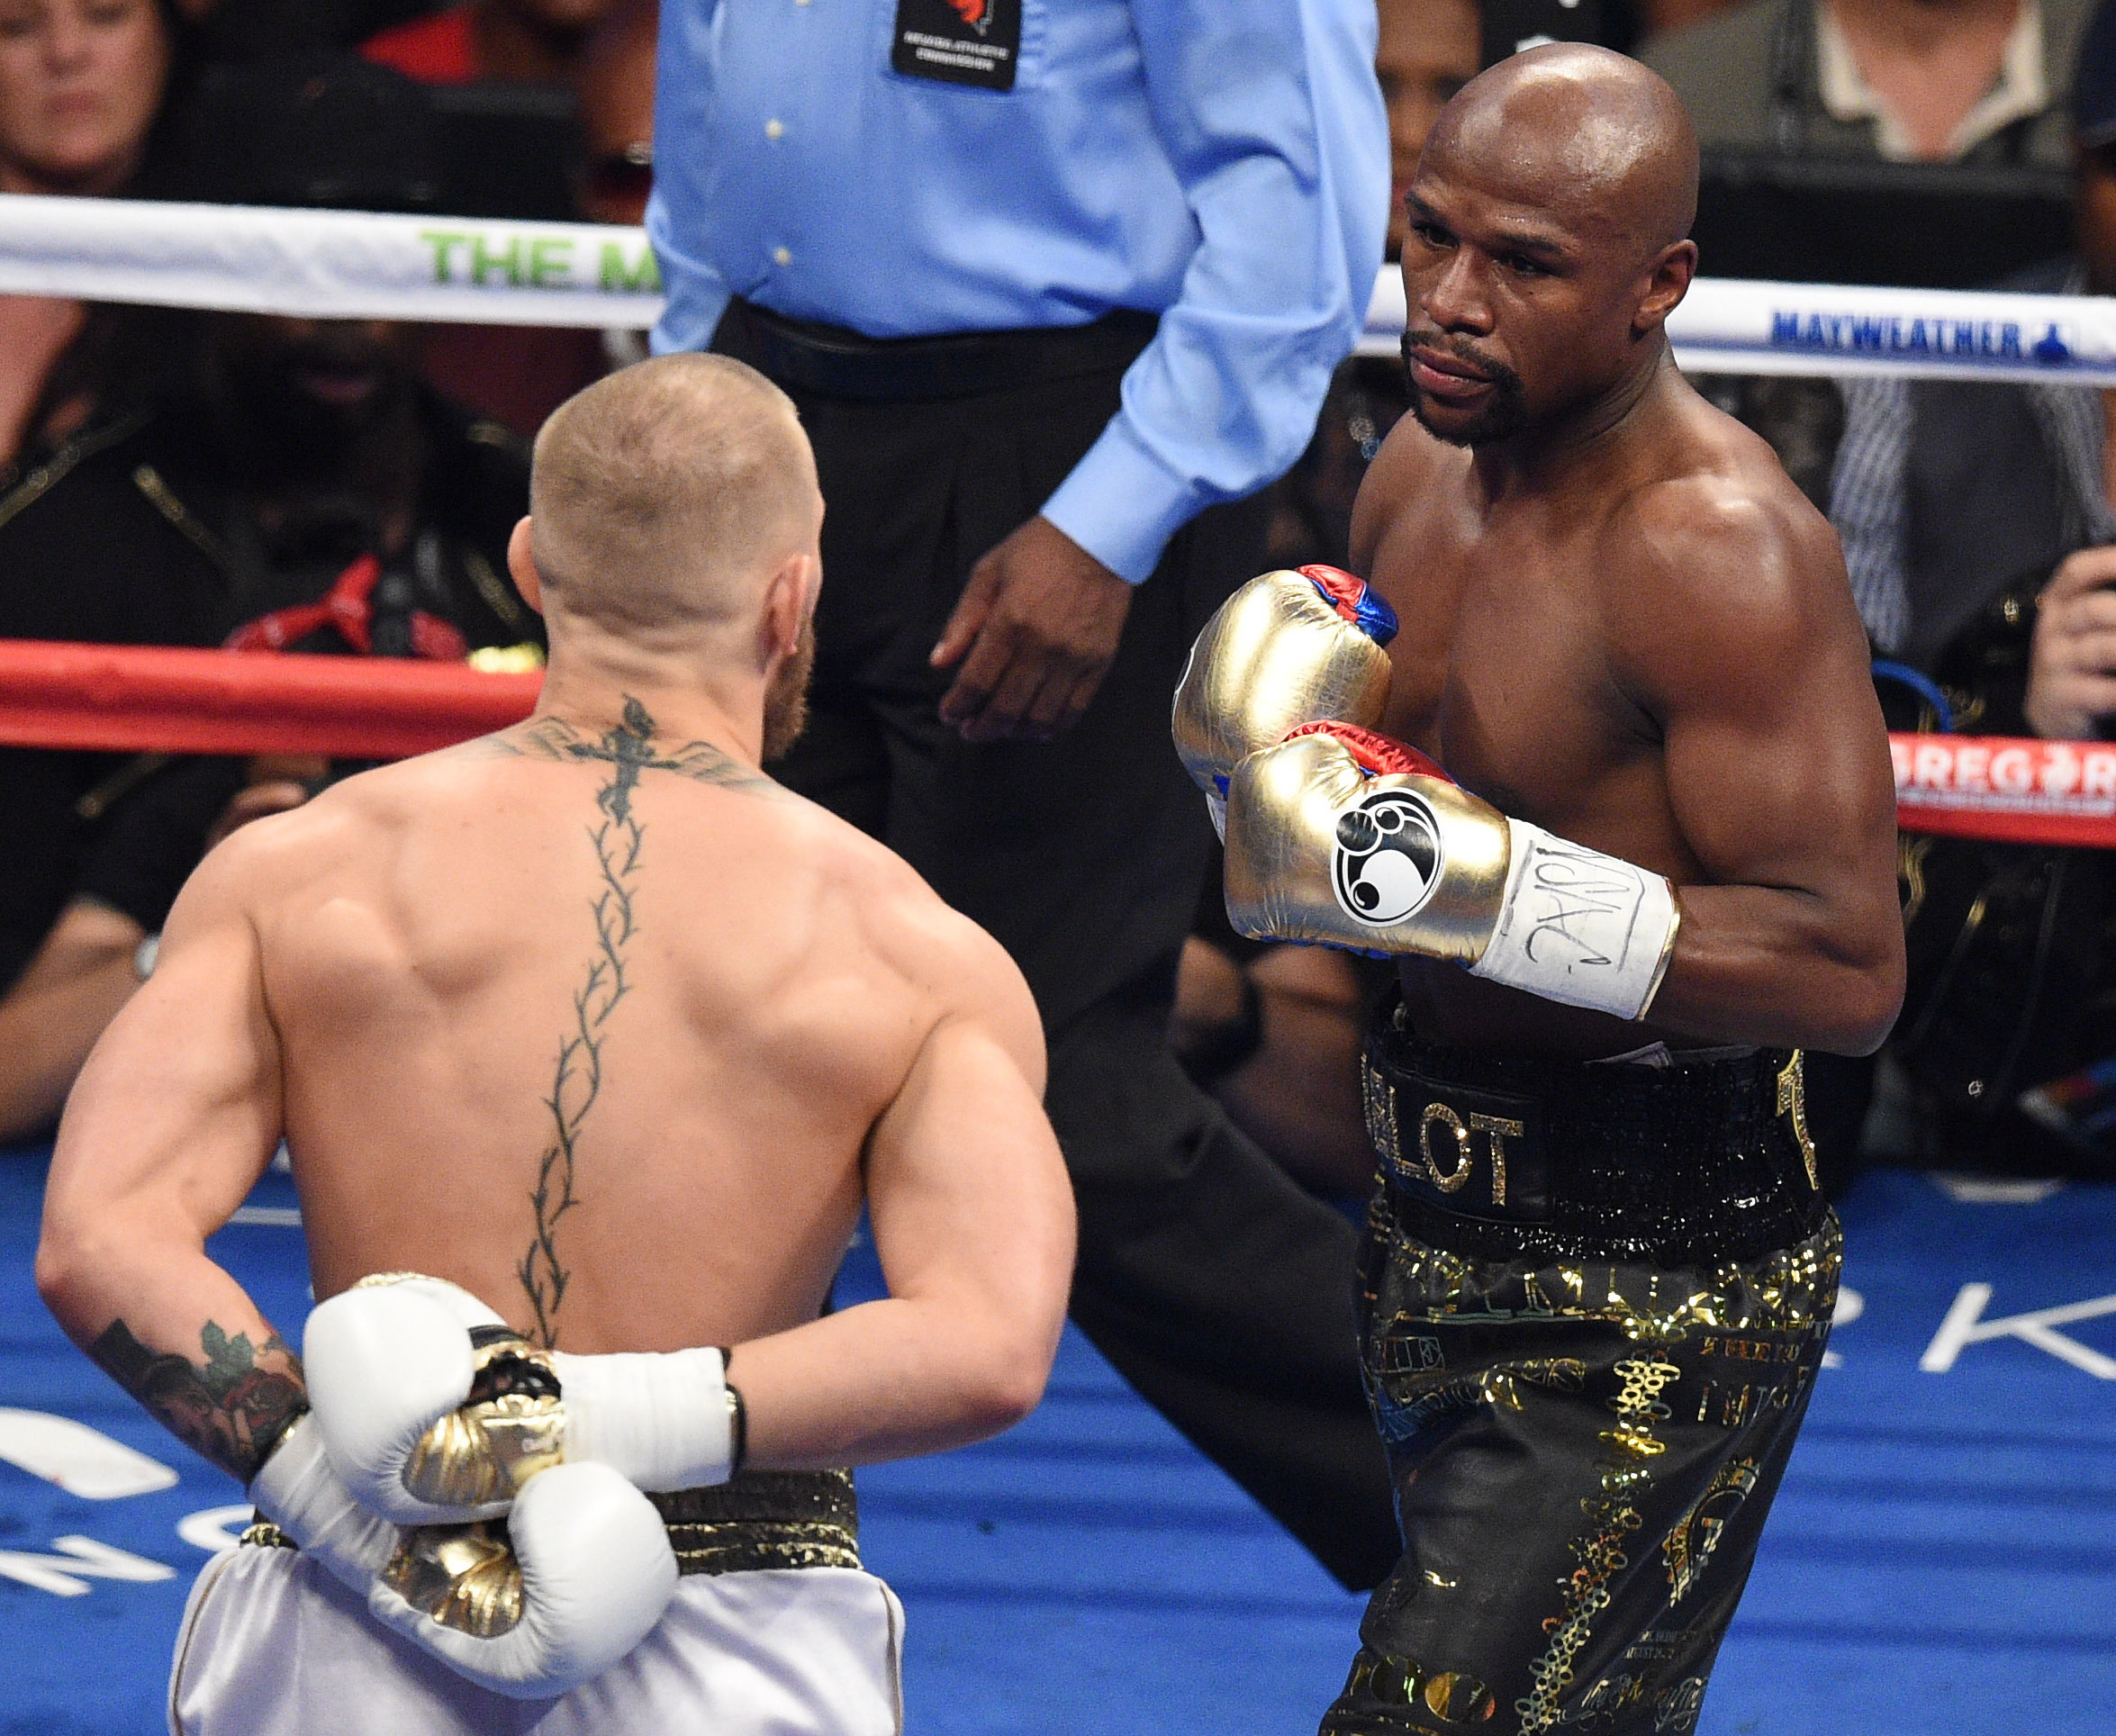 Conor McGregor taunts Floyd Mayweather, fighting with his hands behind his back.